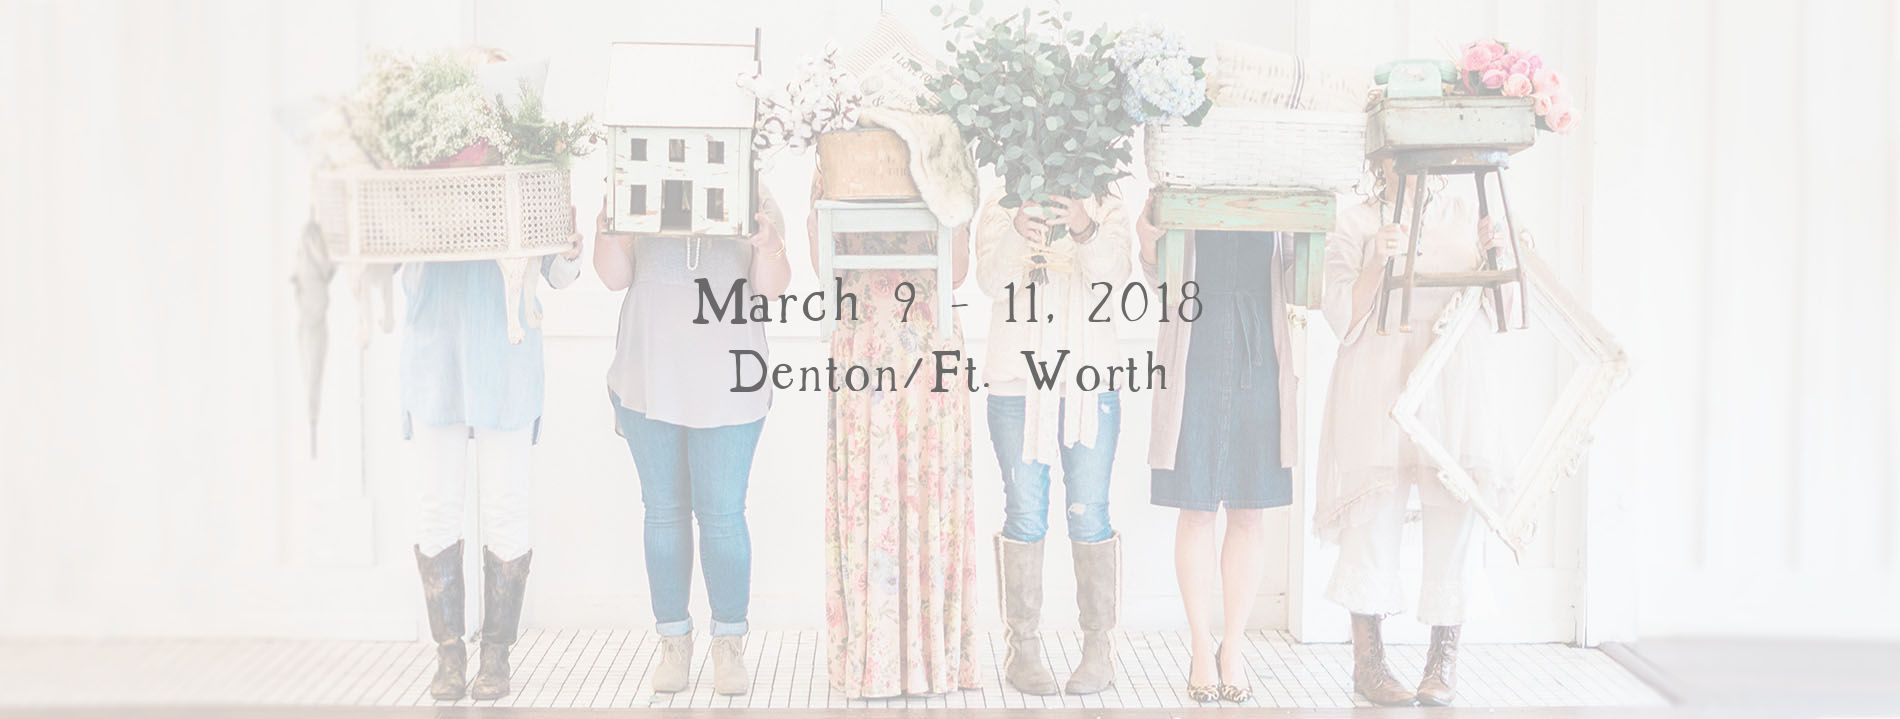 Denton/Ft. Worth